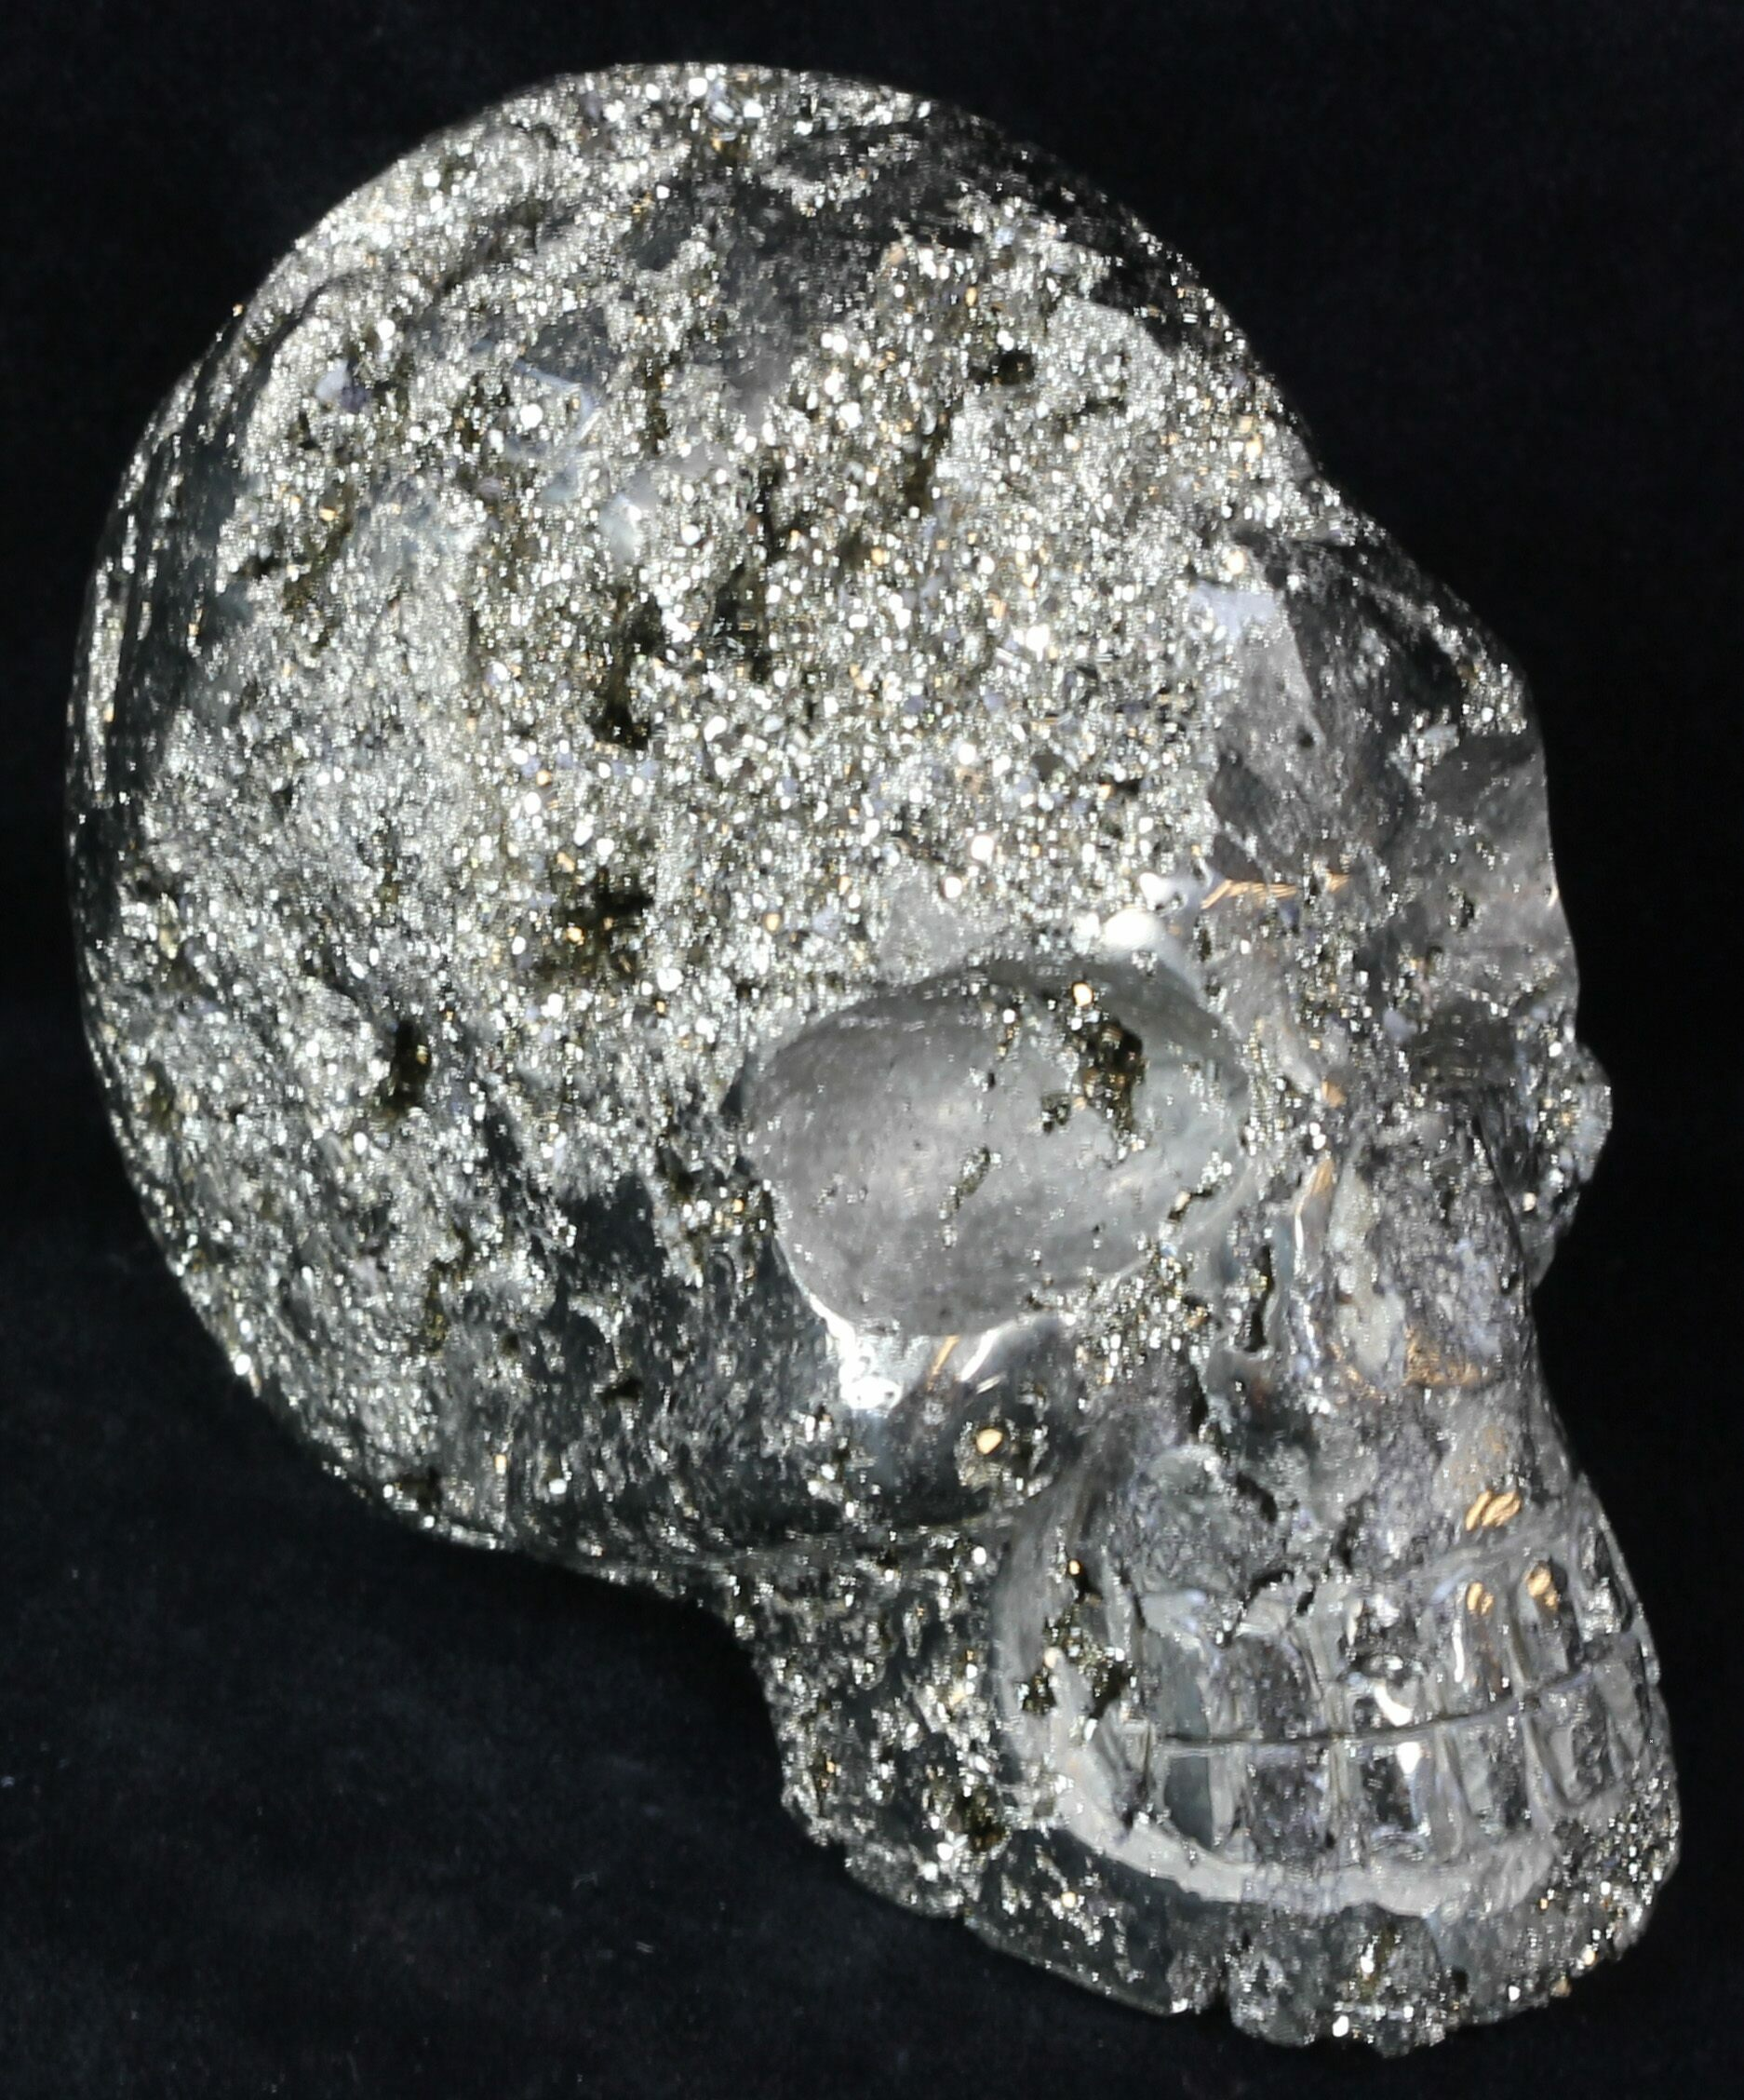 """3.8"""" Polished Pyrite Skull With Druzy Crystals - Peru For ..."""